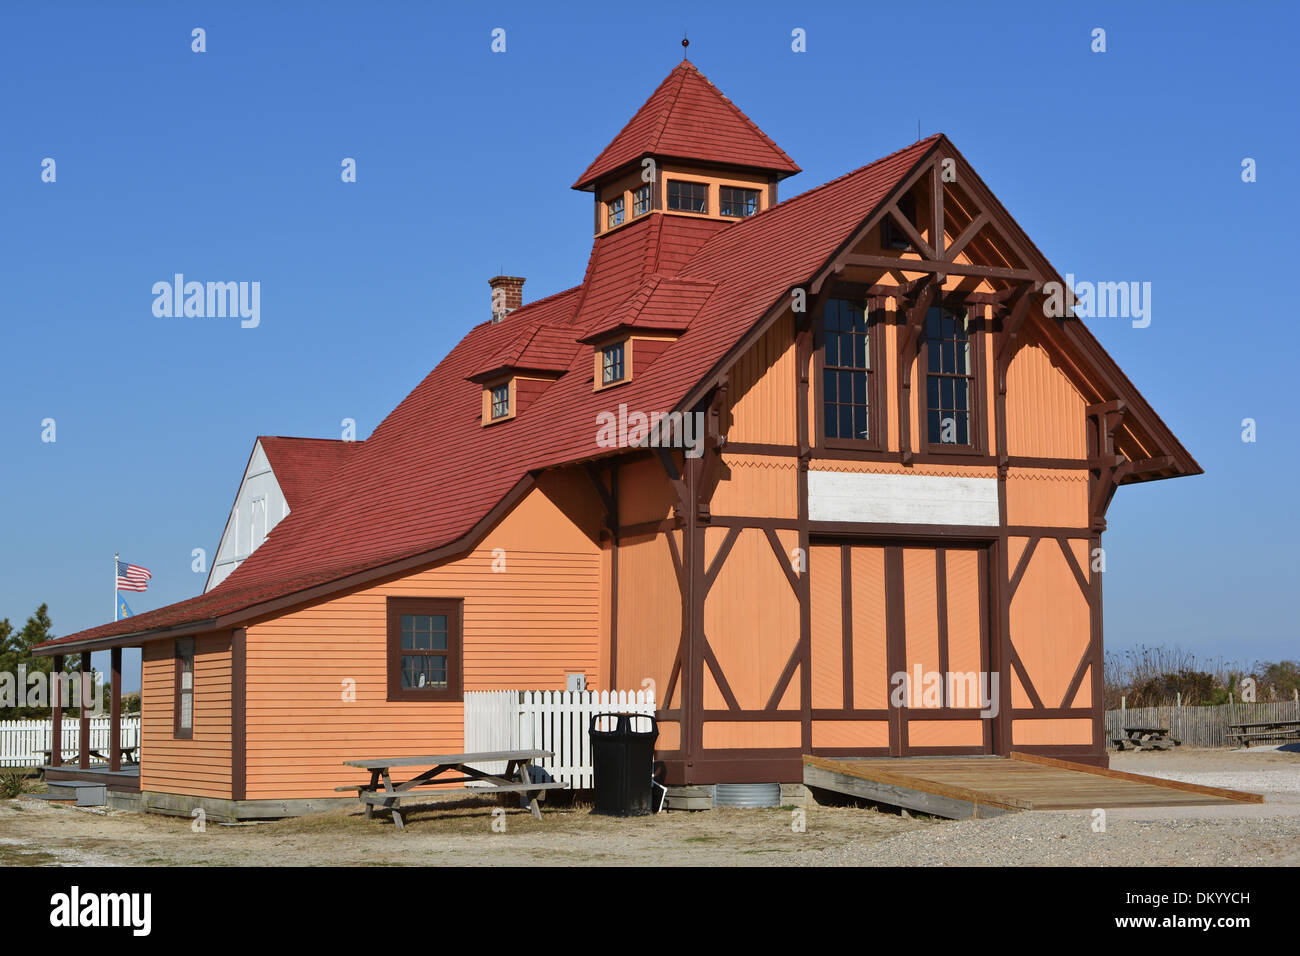 Indian River Life Saving Service Station, listed on the NRHP on September 29, 1976. North of Bethany Beach on Delaware Route 1 on the Atlantic Ocean, Bethany Beach, Sussex County, Delaware - Stock Image